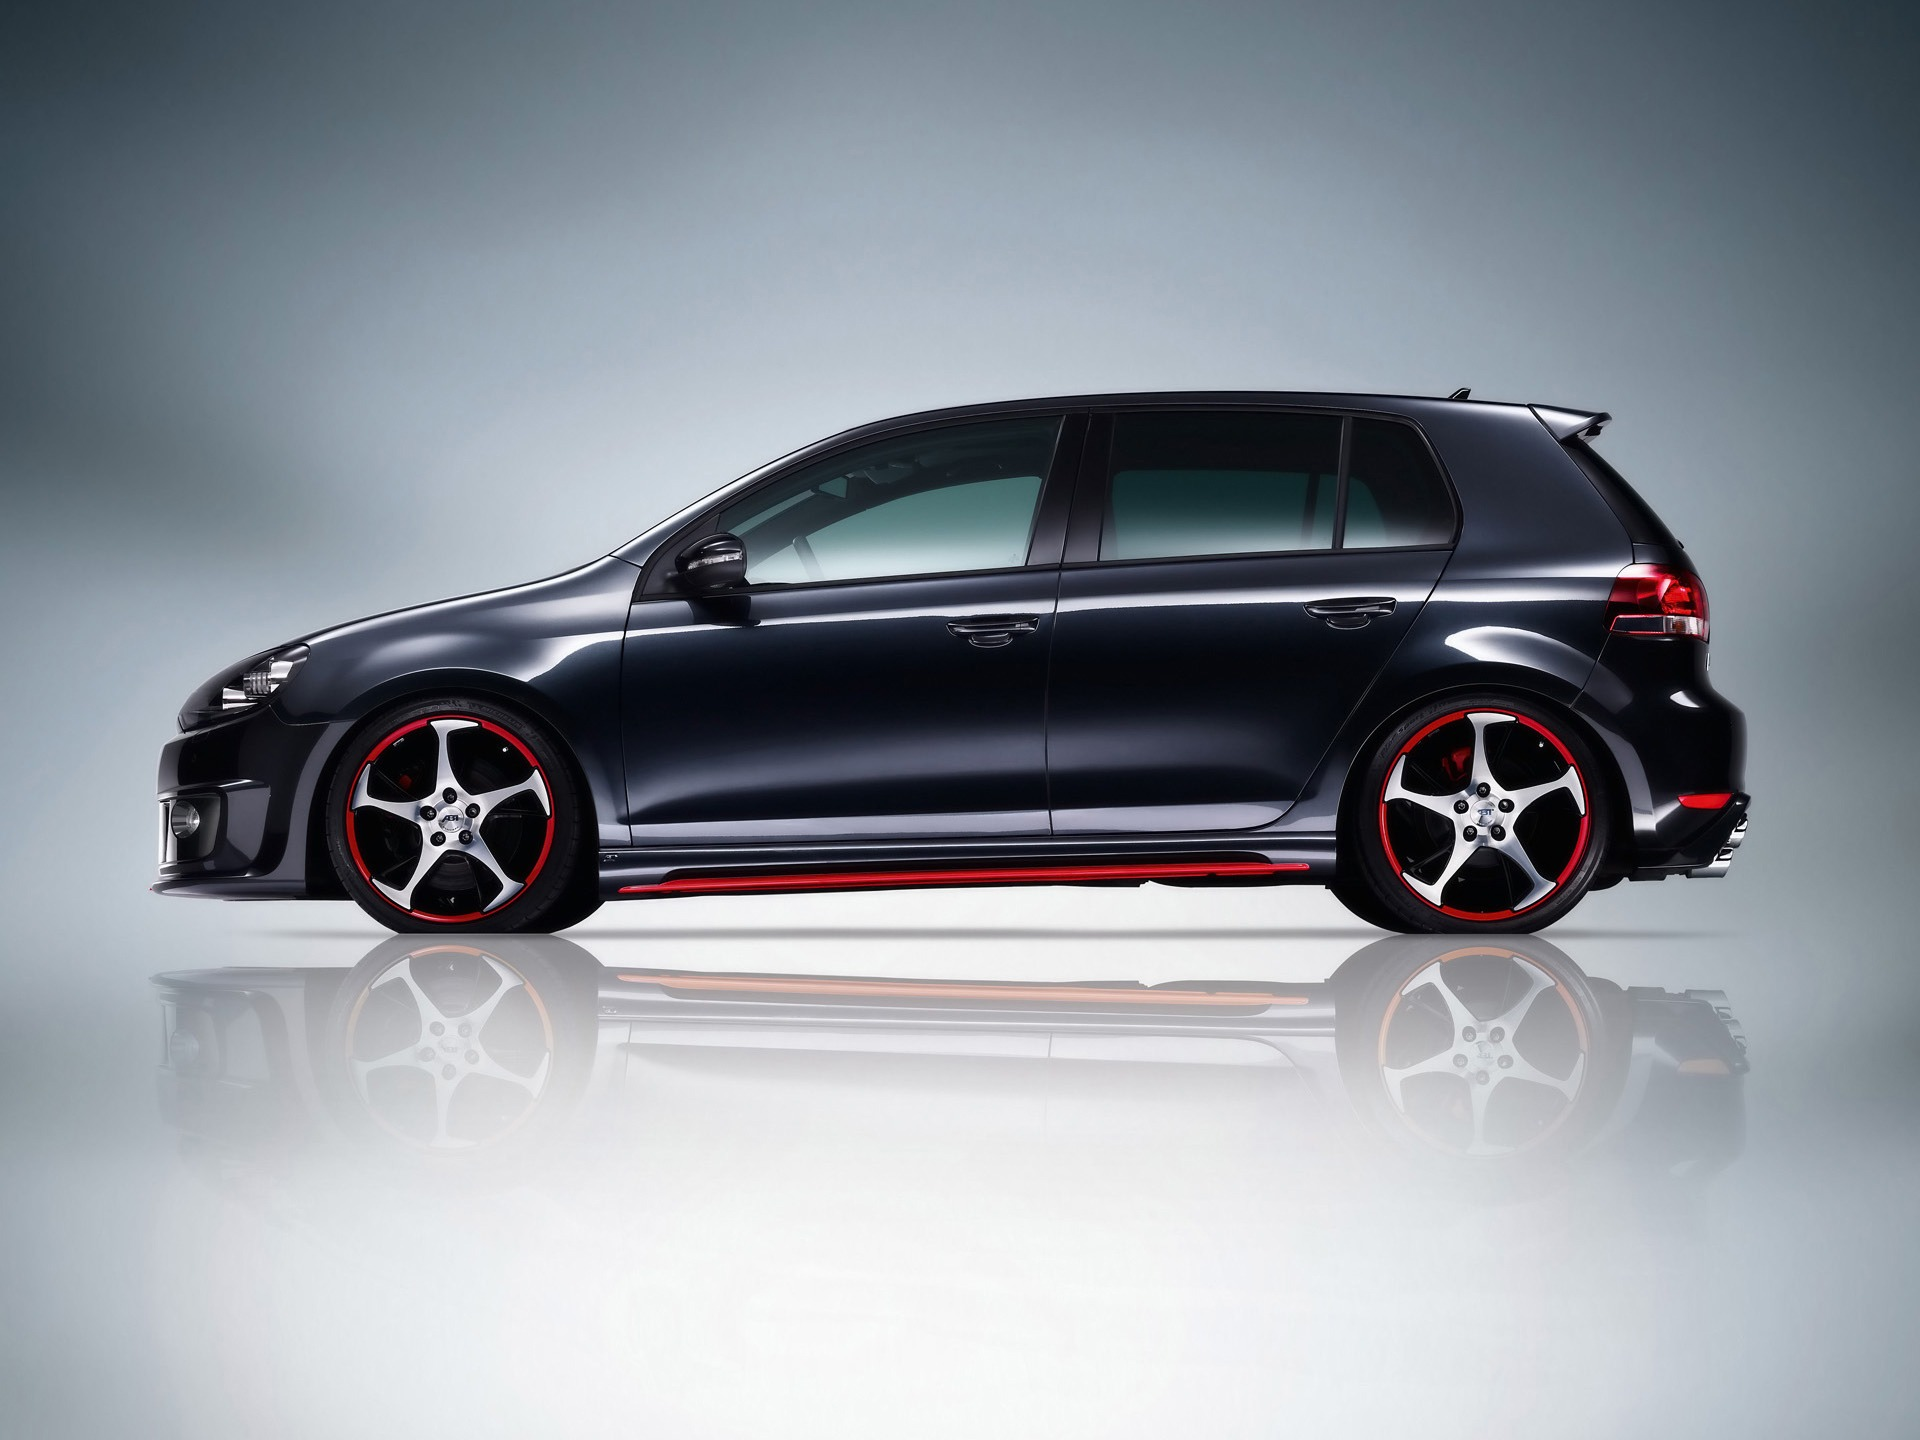 Vw Golf Gti Wallpaper Volkswagen Cars Wallpapers In Jpg Format